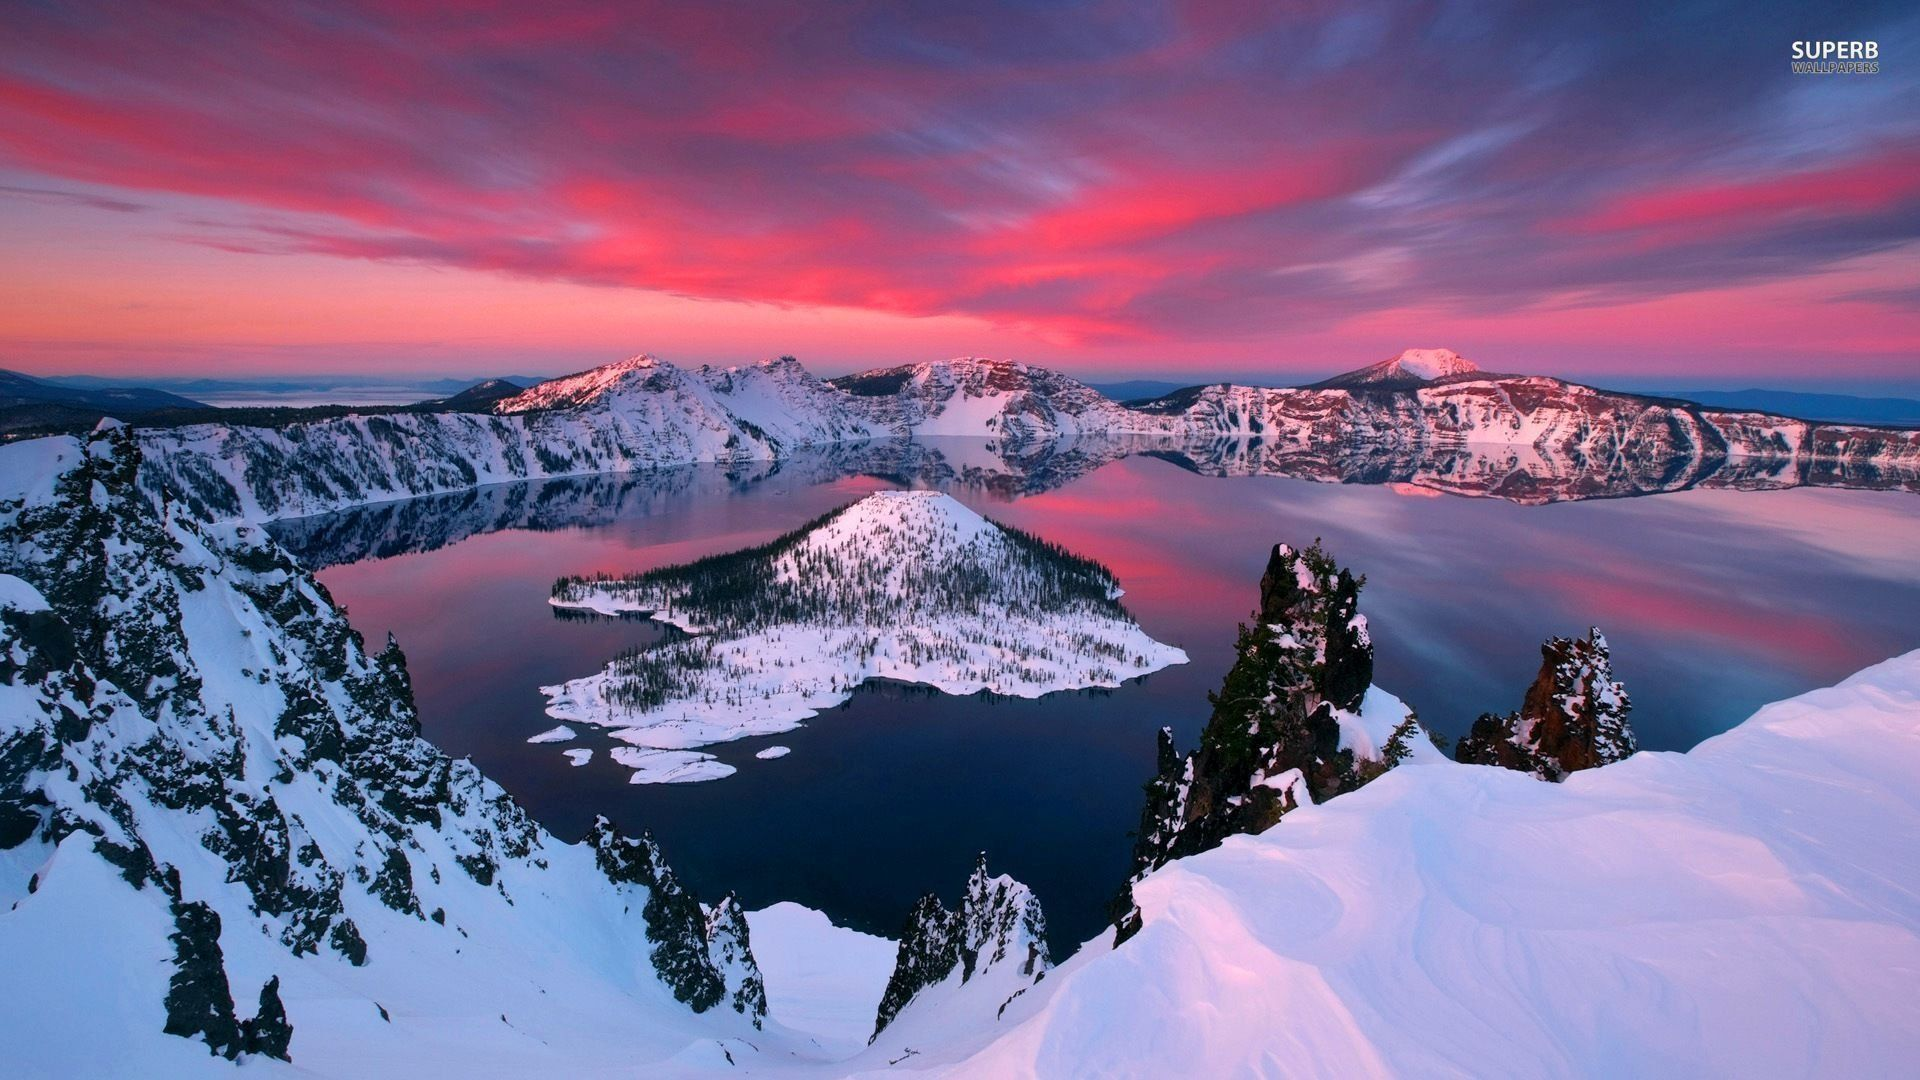 crater lake wallpaper collection | hd wallpapers | pinterest | hd